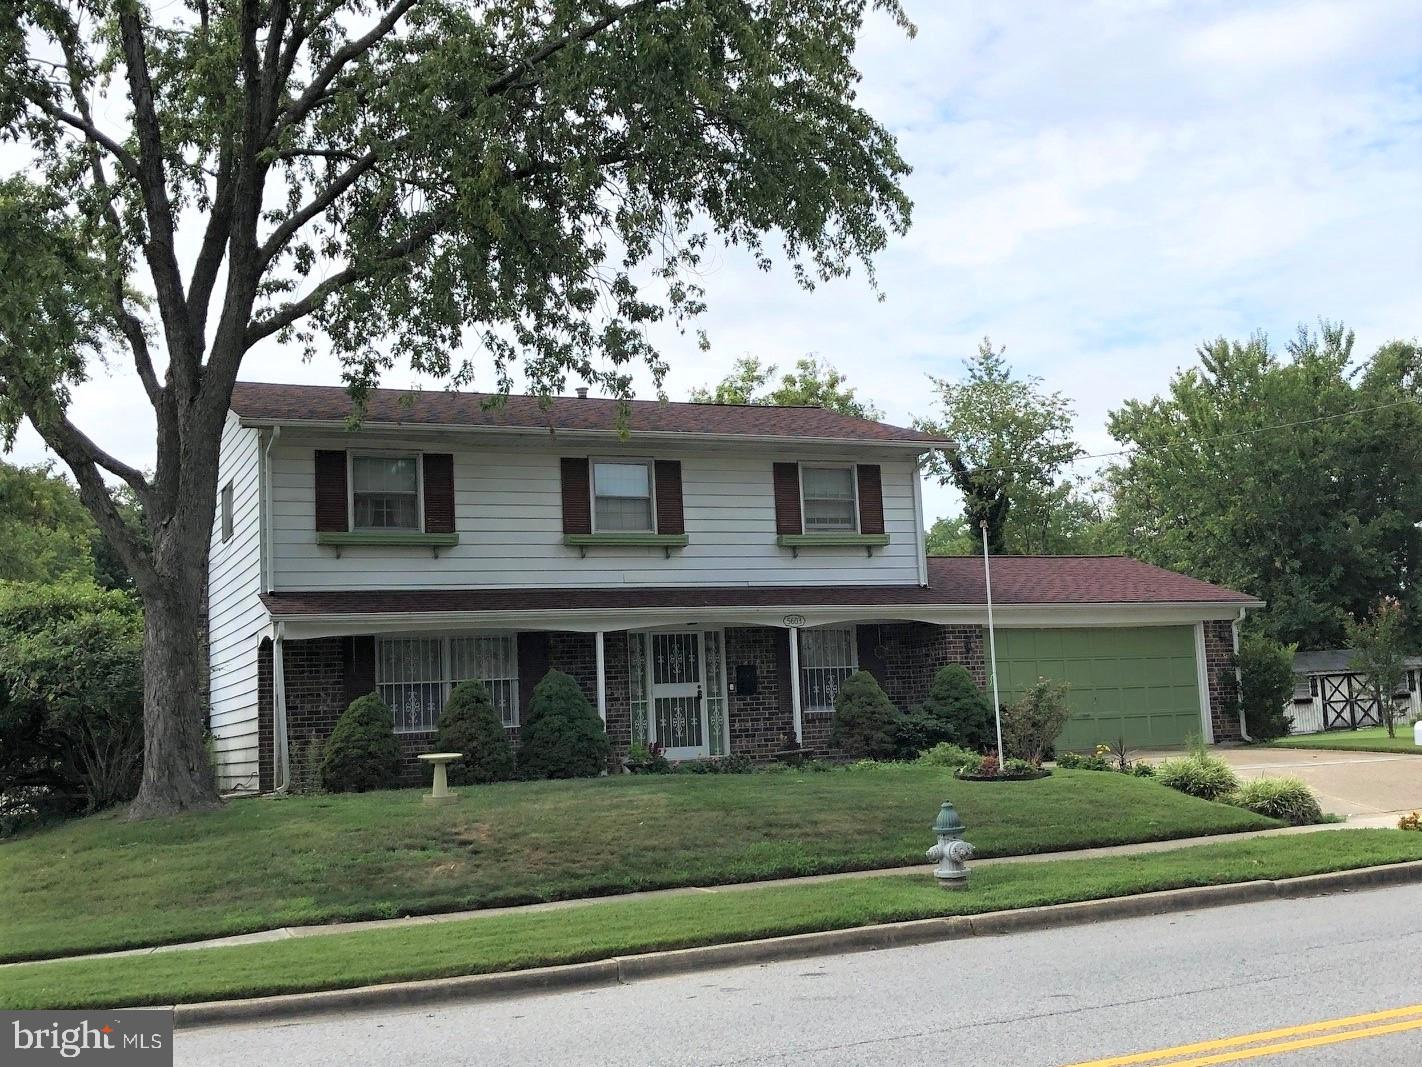 Fine two-story home on a corner lot with a brick first floor, full basement, and a two-car garage. T